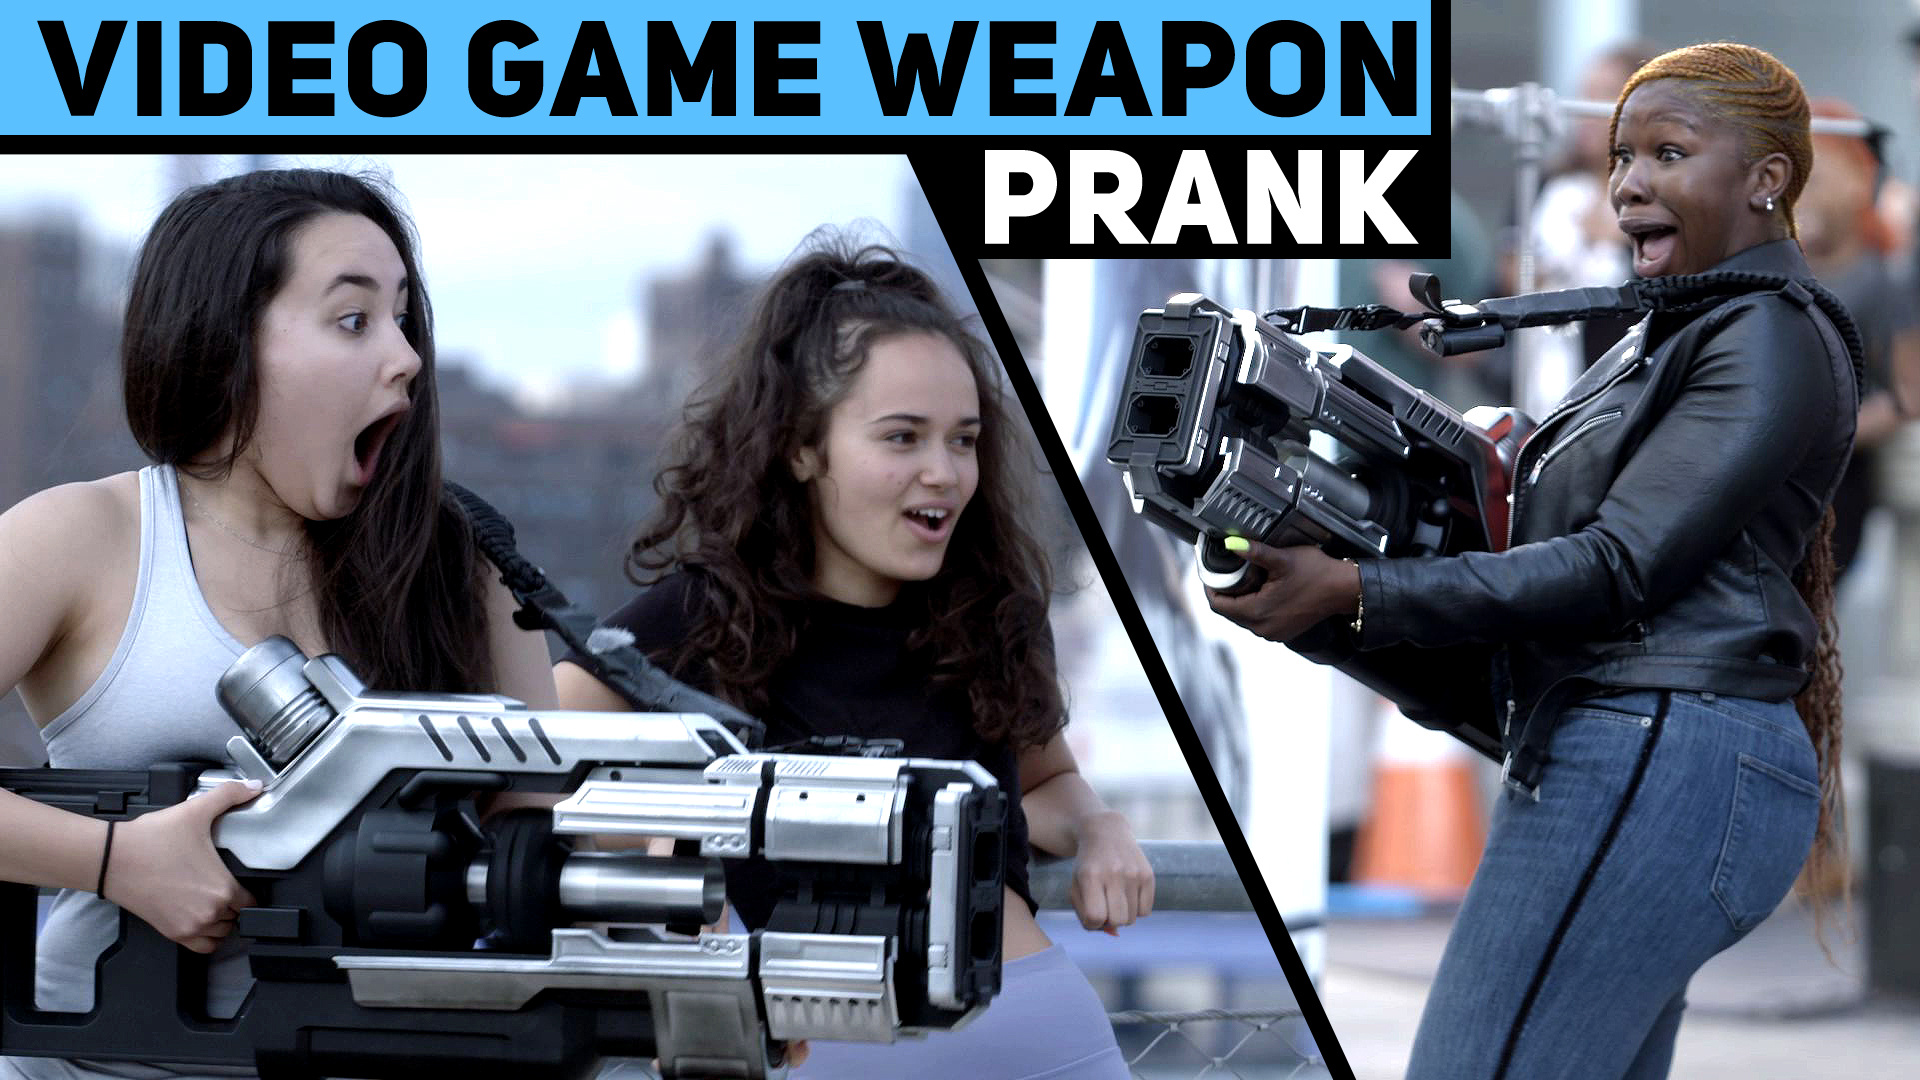 Thumbnail for Video Game Weapon Prank